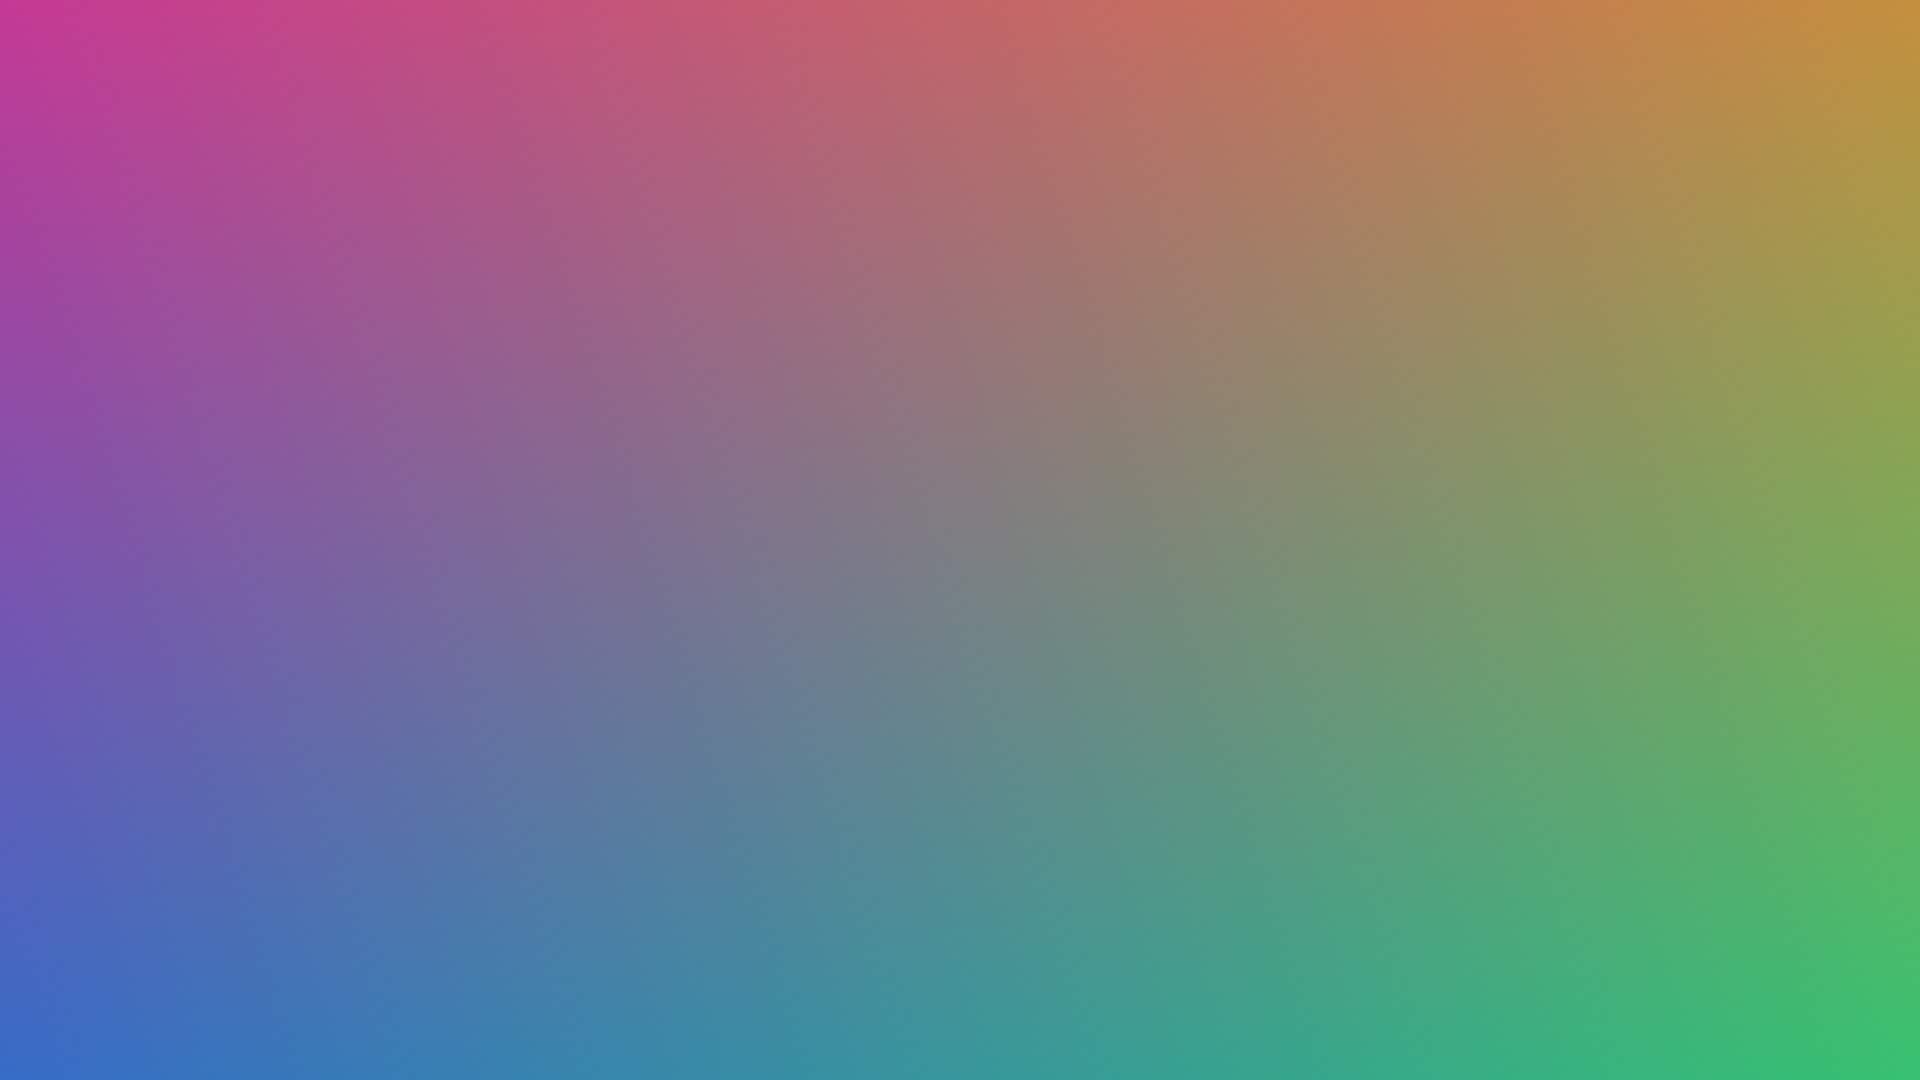 sl87colorrainbowblurgradationwallpaper